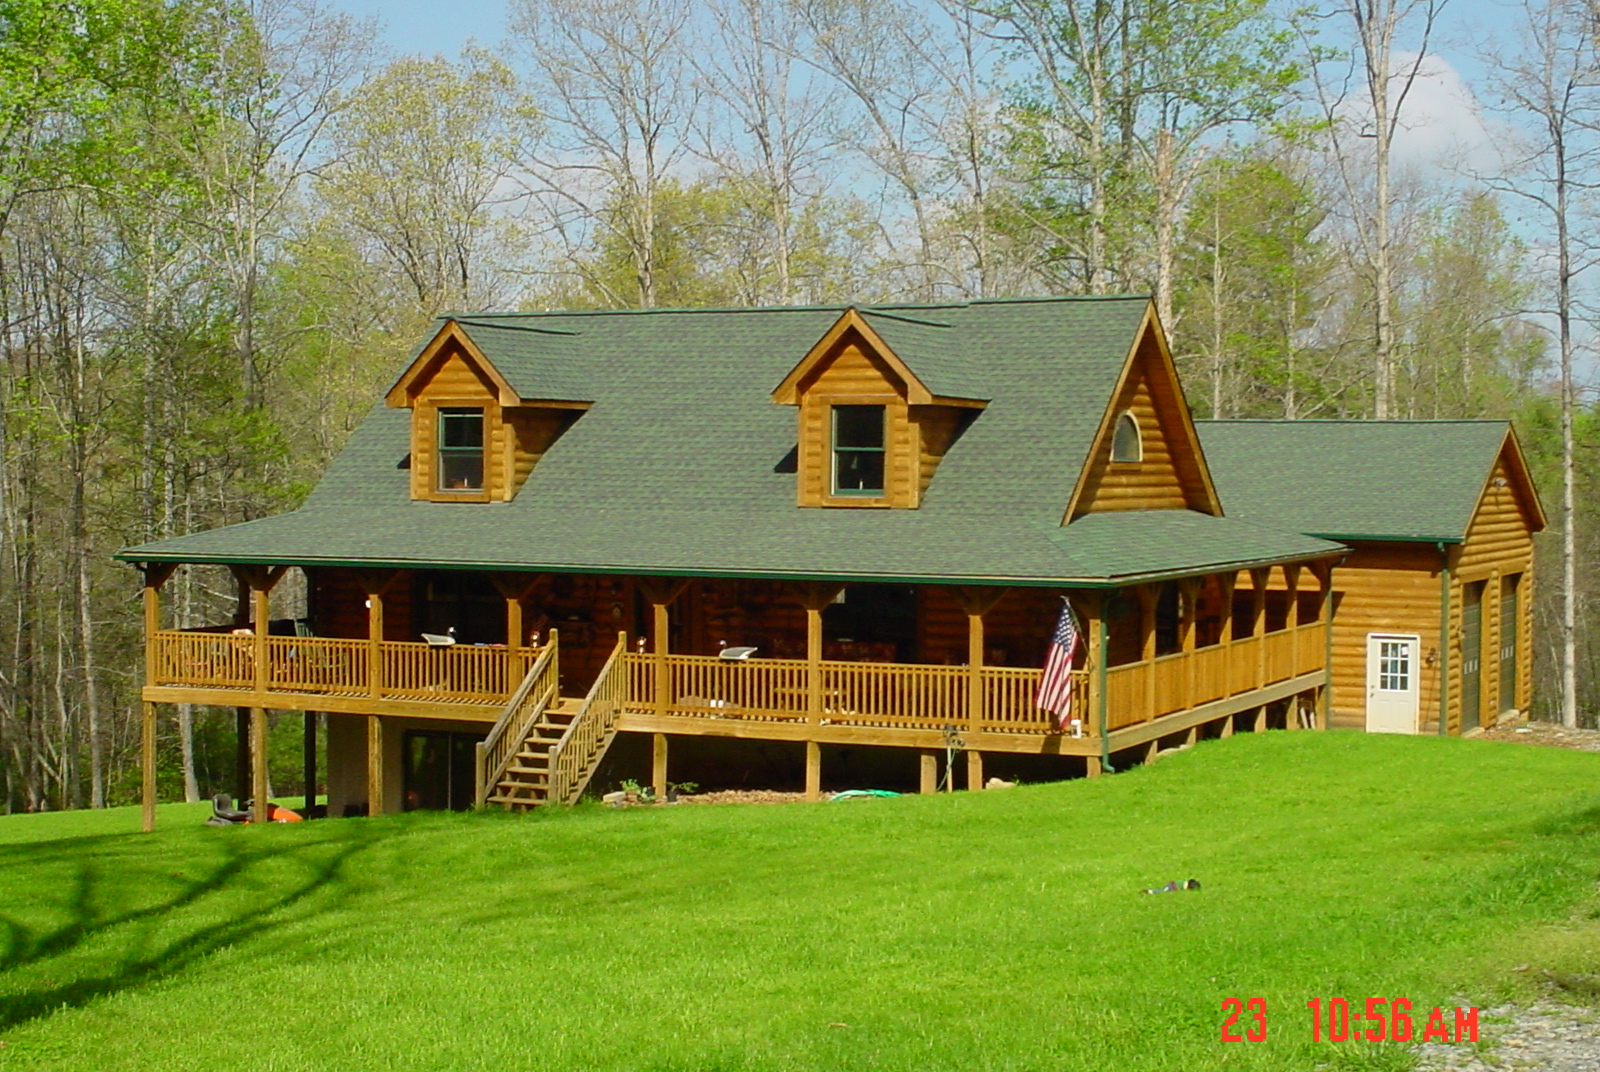 Log Home Styles By Honest Abe With on Ranch House Plans With Garages